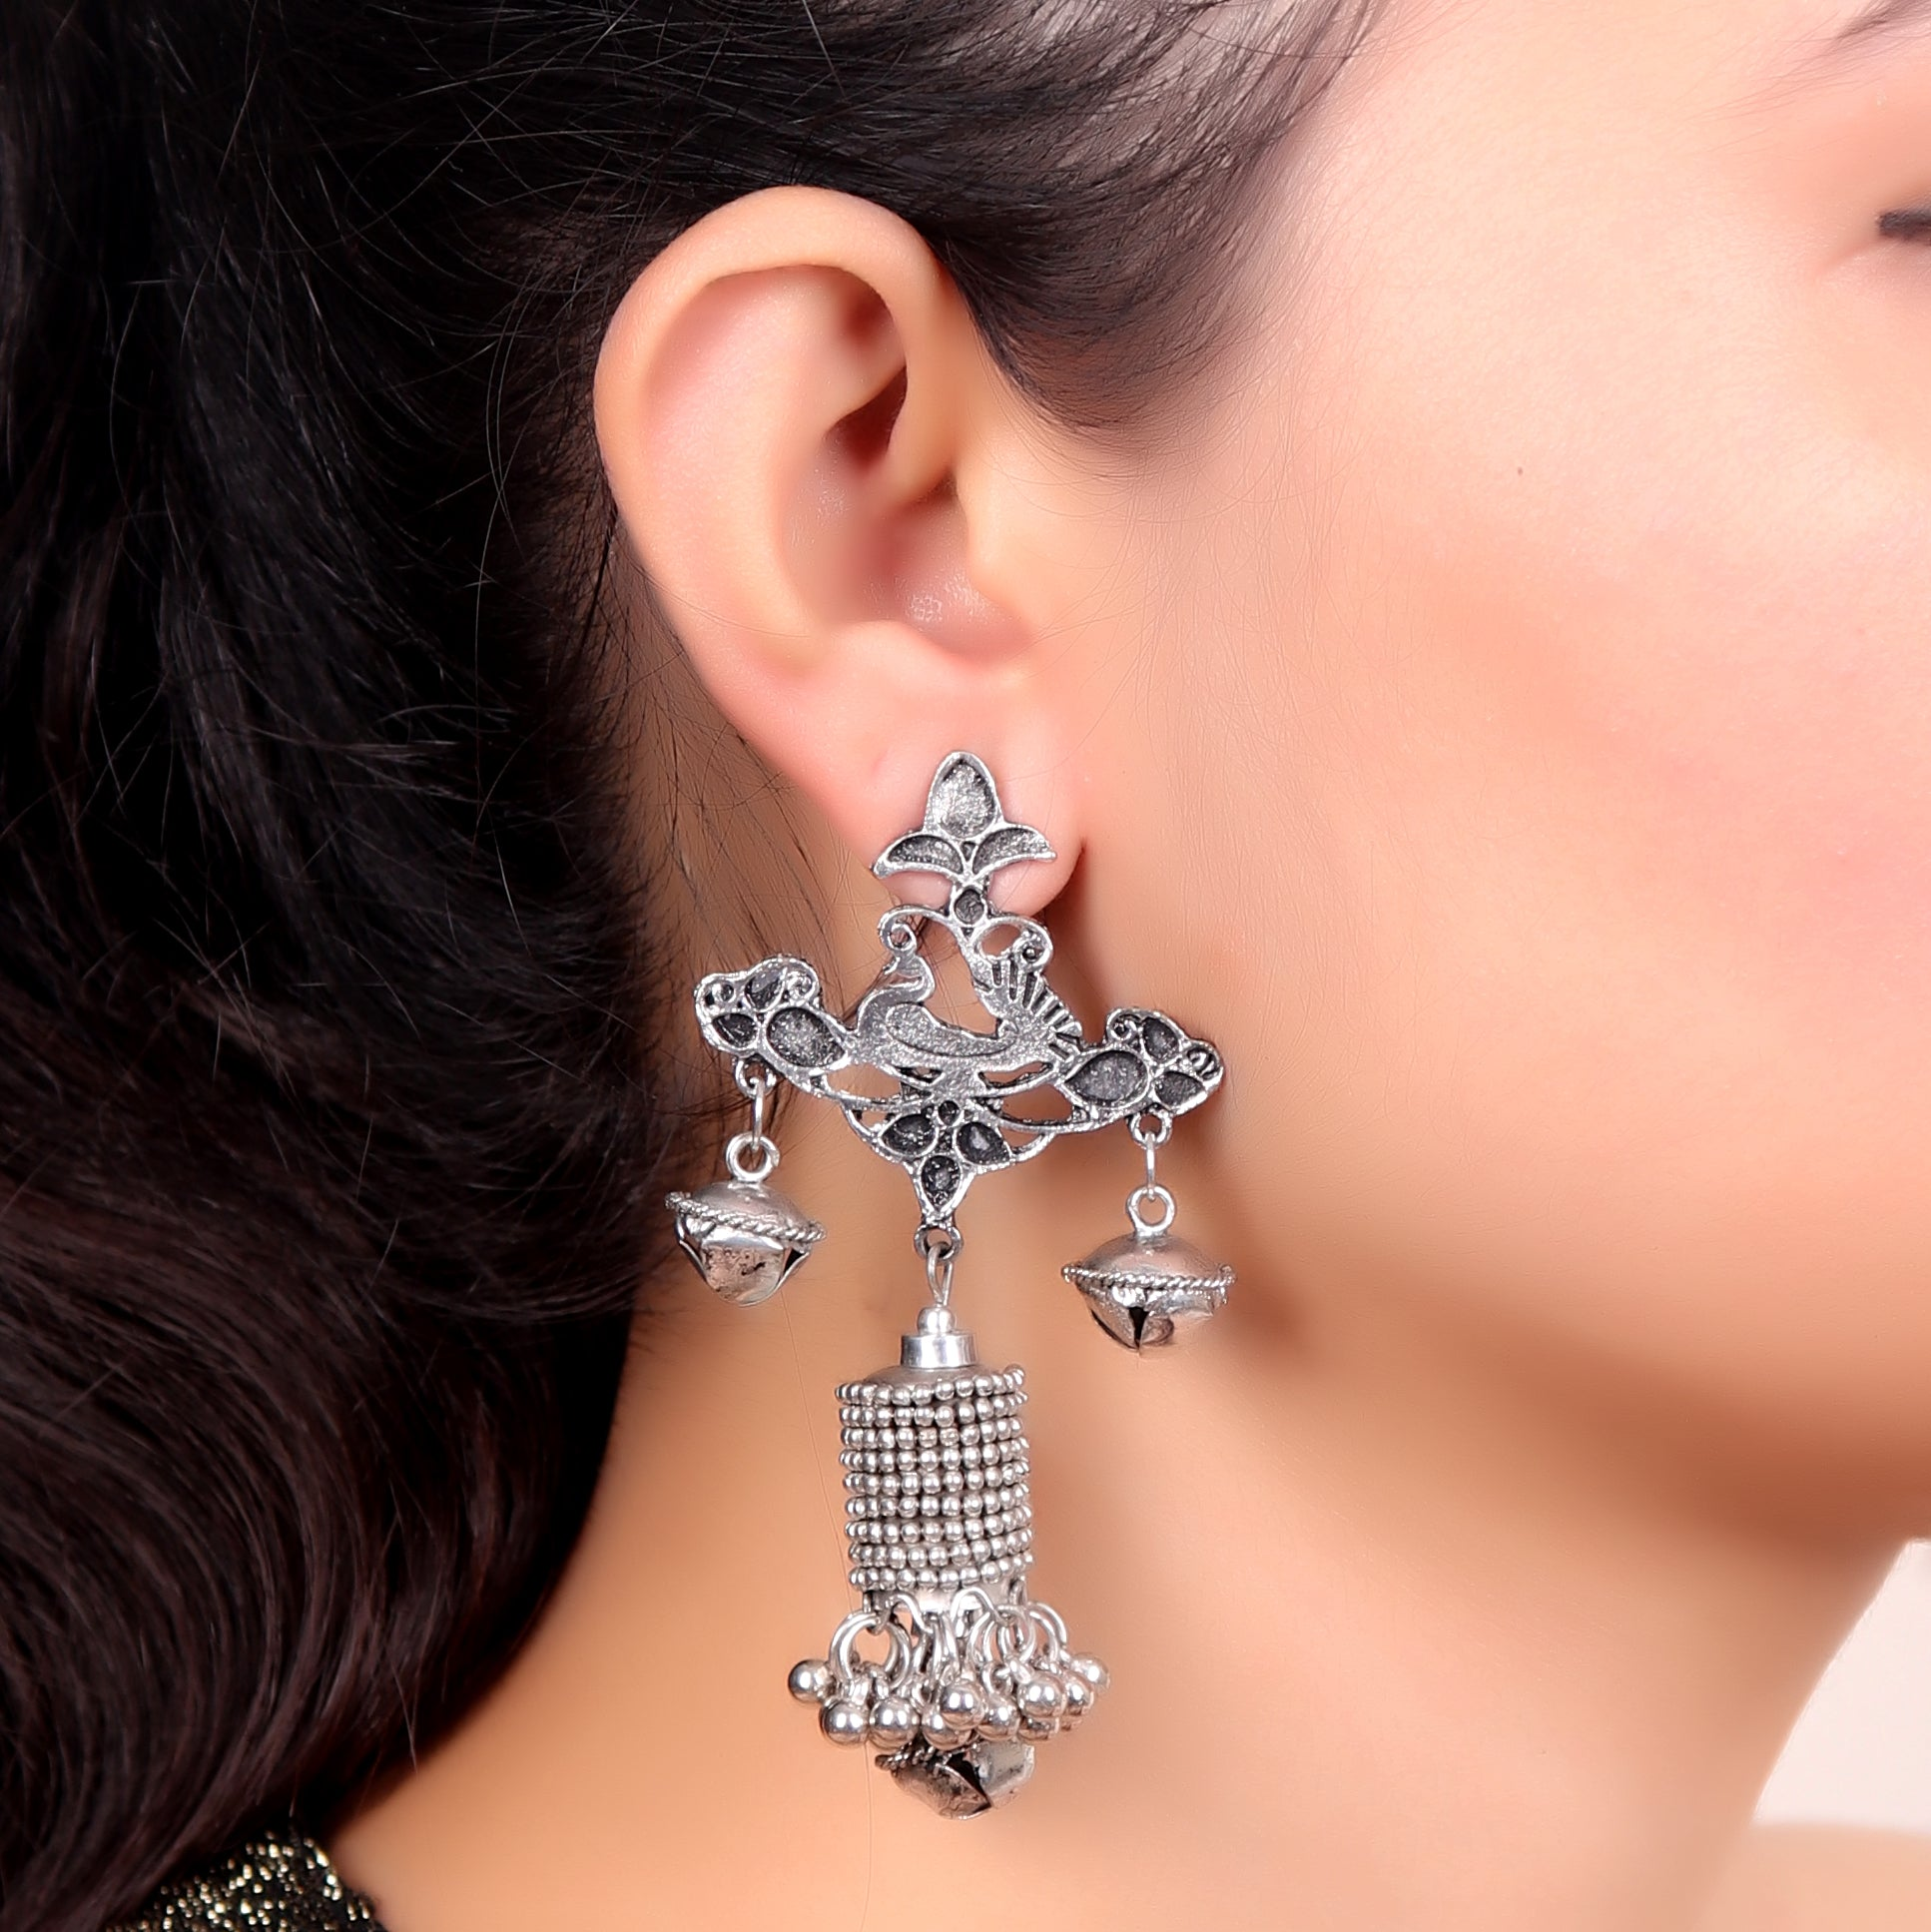 Earrings,Ghungroo Love Earrings in Silver - Cippele Multi Store